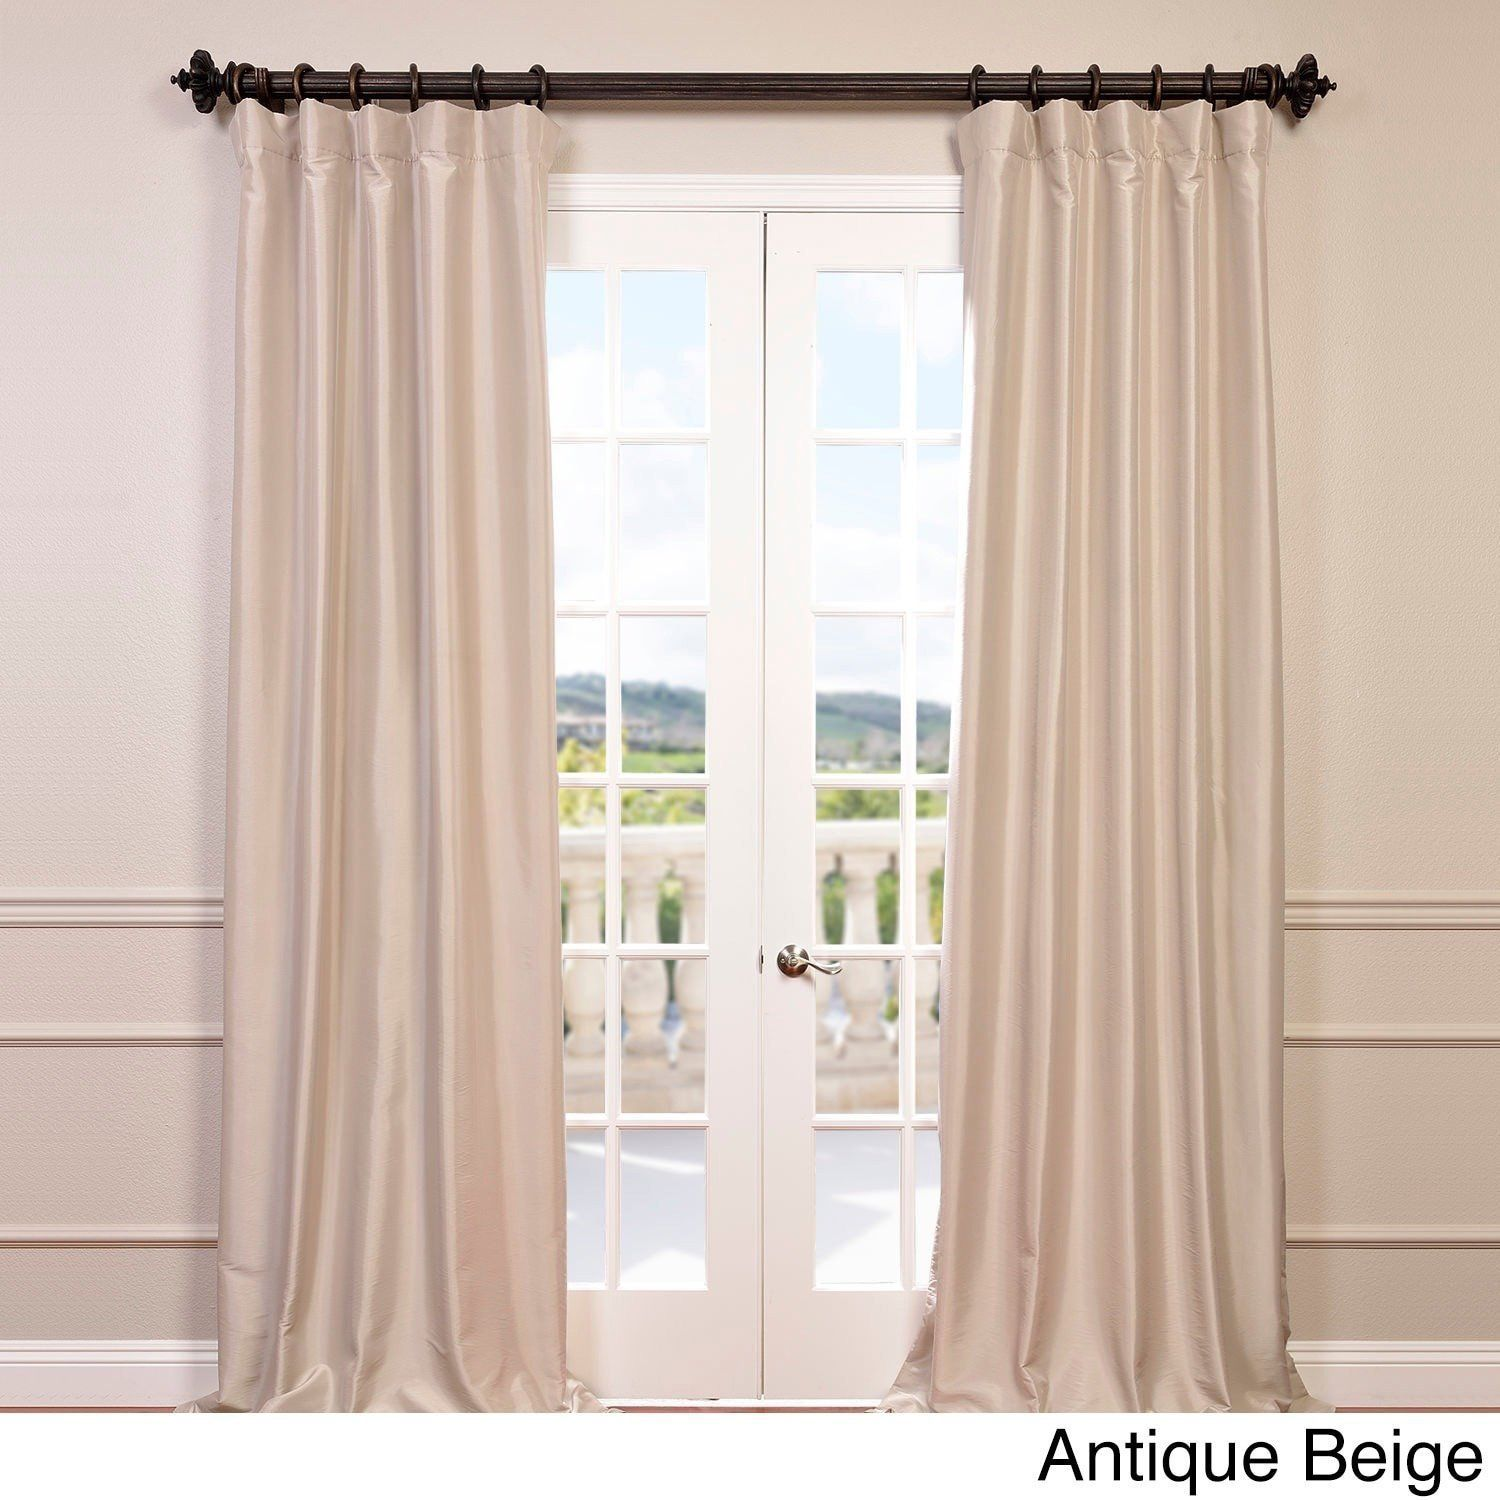 clever ideas window design inspiring curtain curtains single inspiration